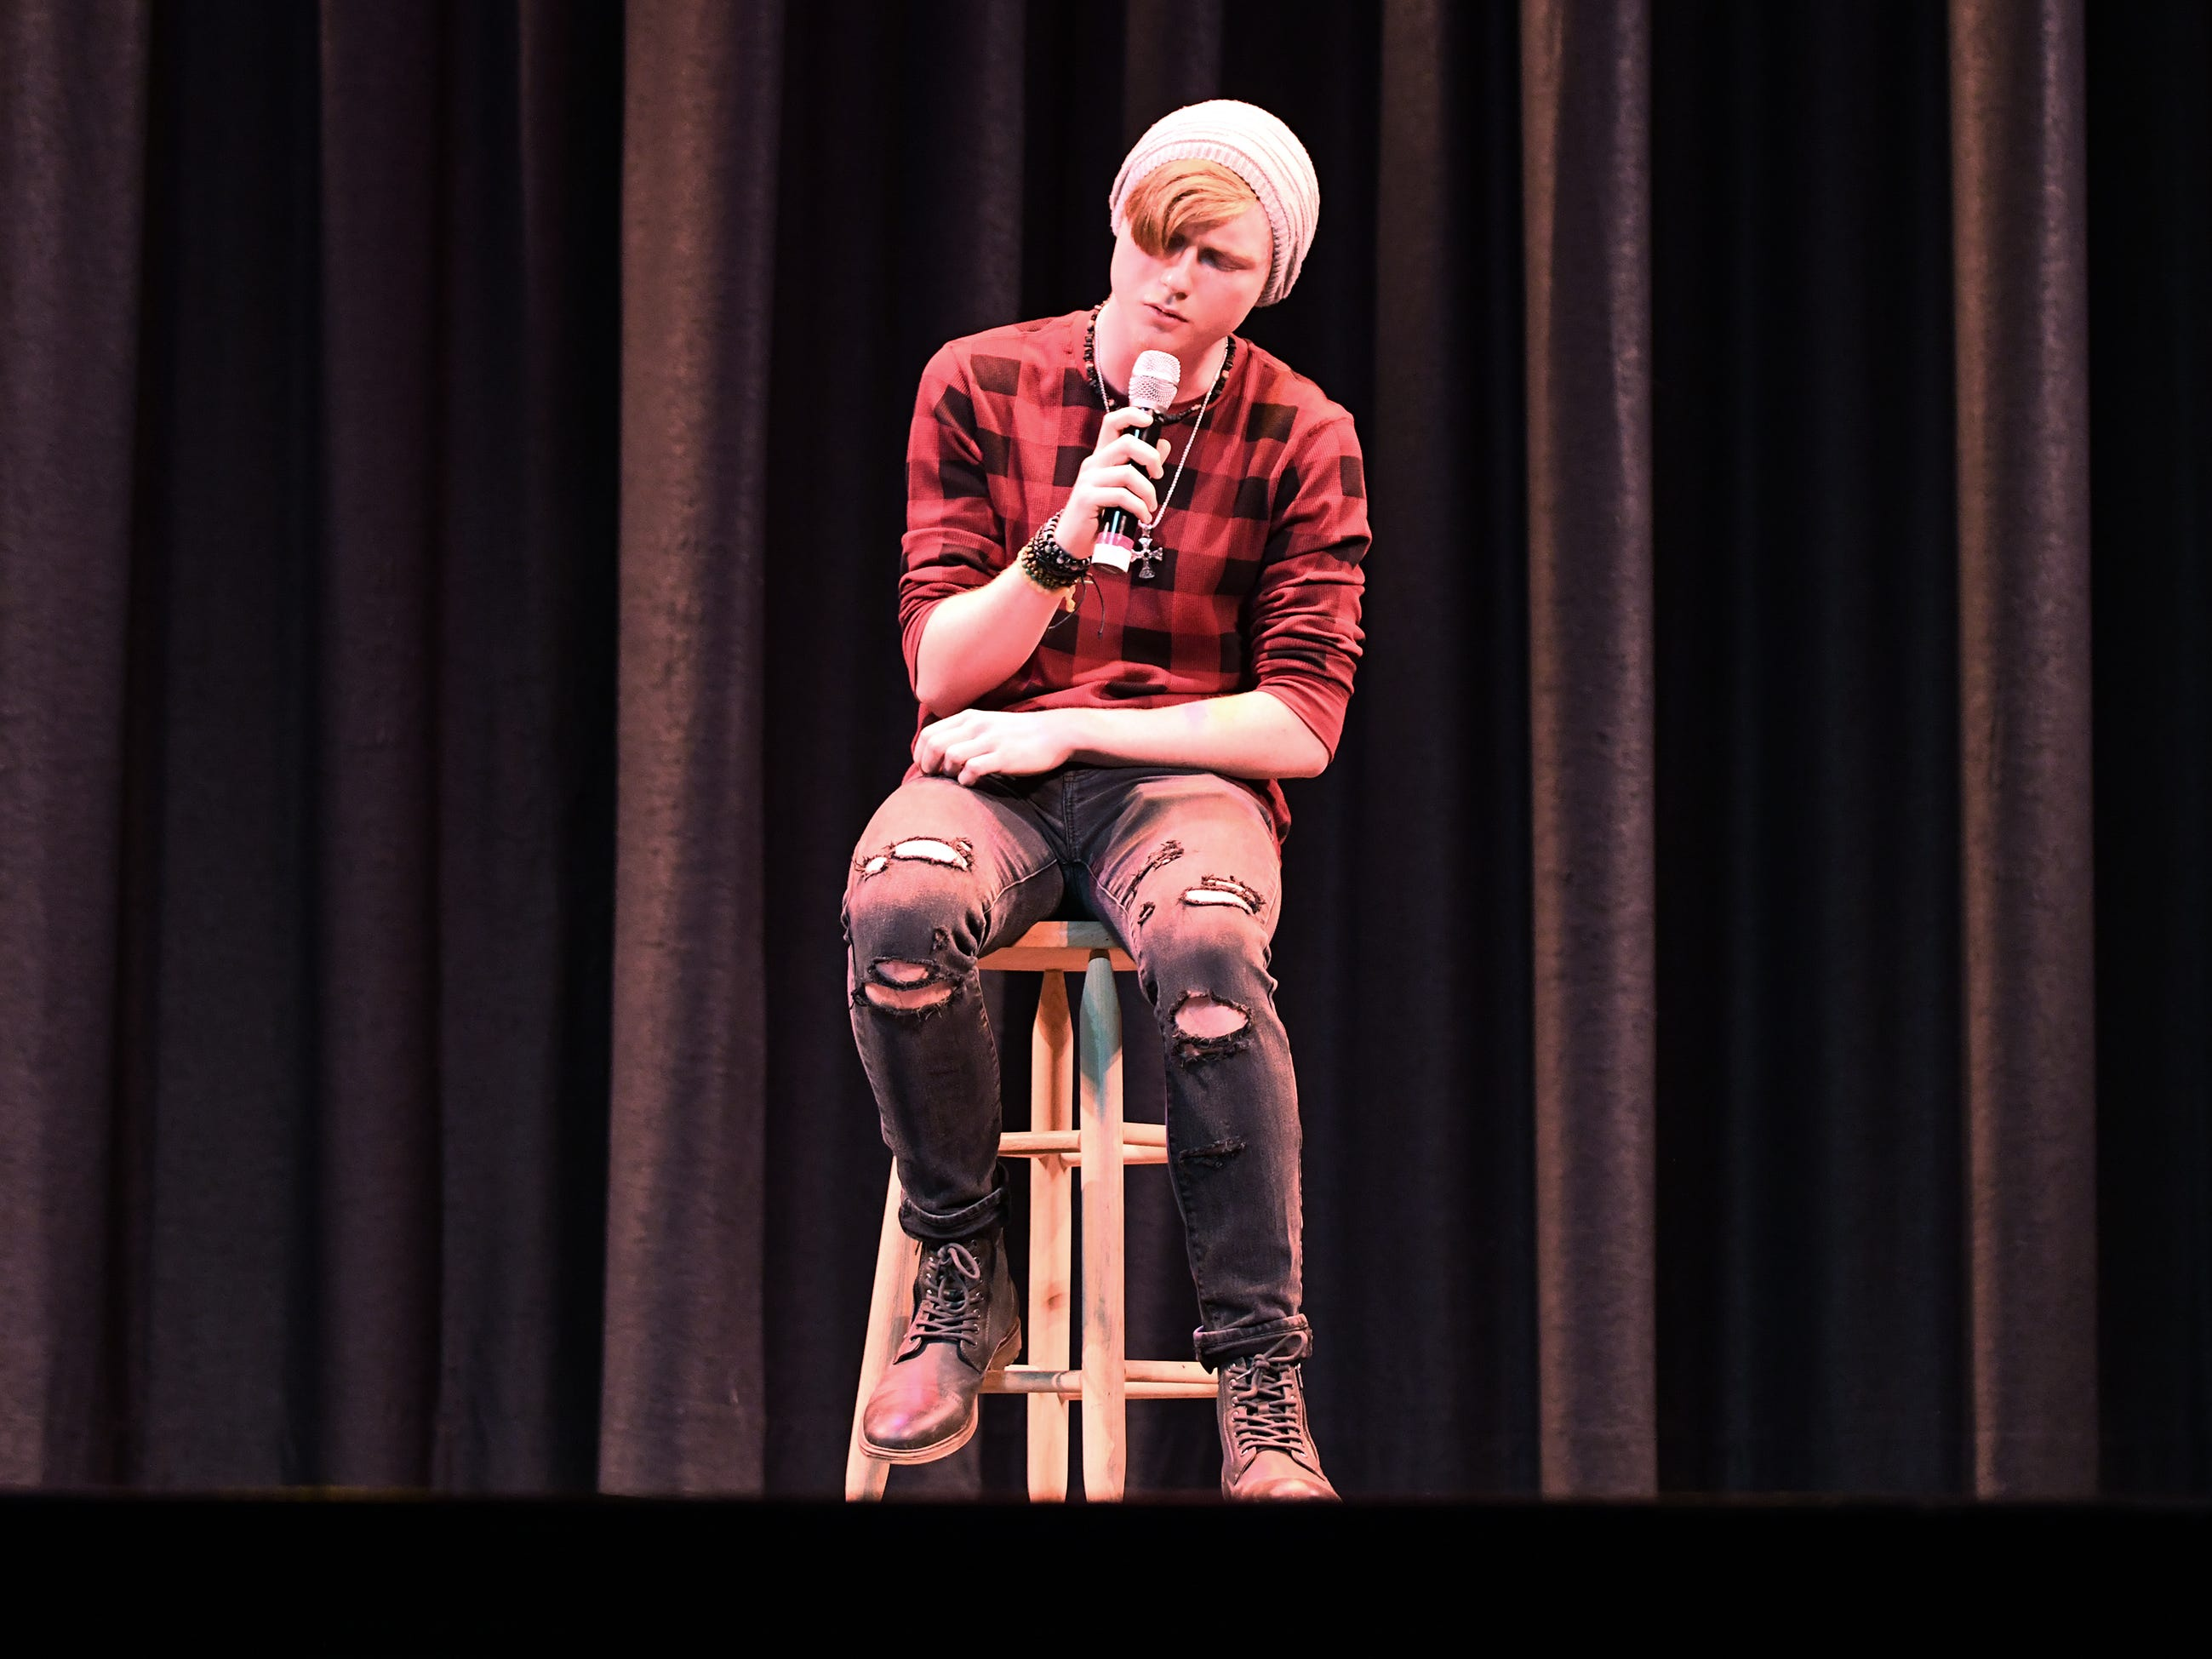 Tyler Kimmel performs during the talent portion of Mr. Vineland 2019 at Vineland High School on Thursday, January 10.